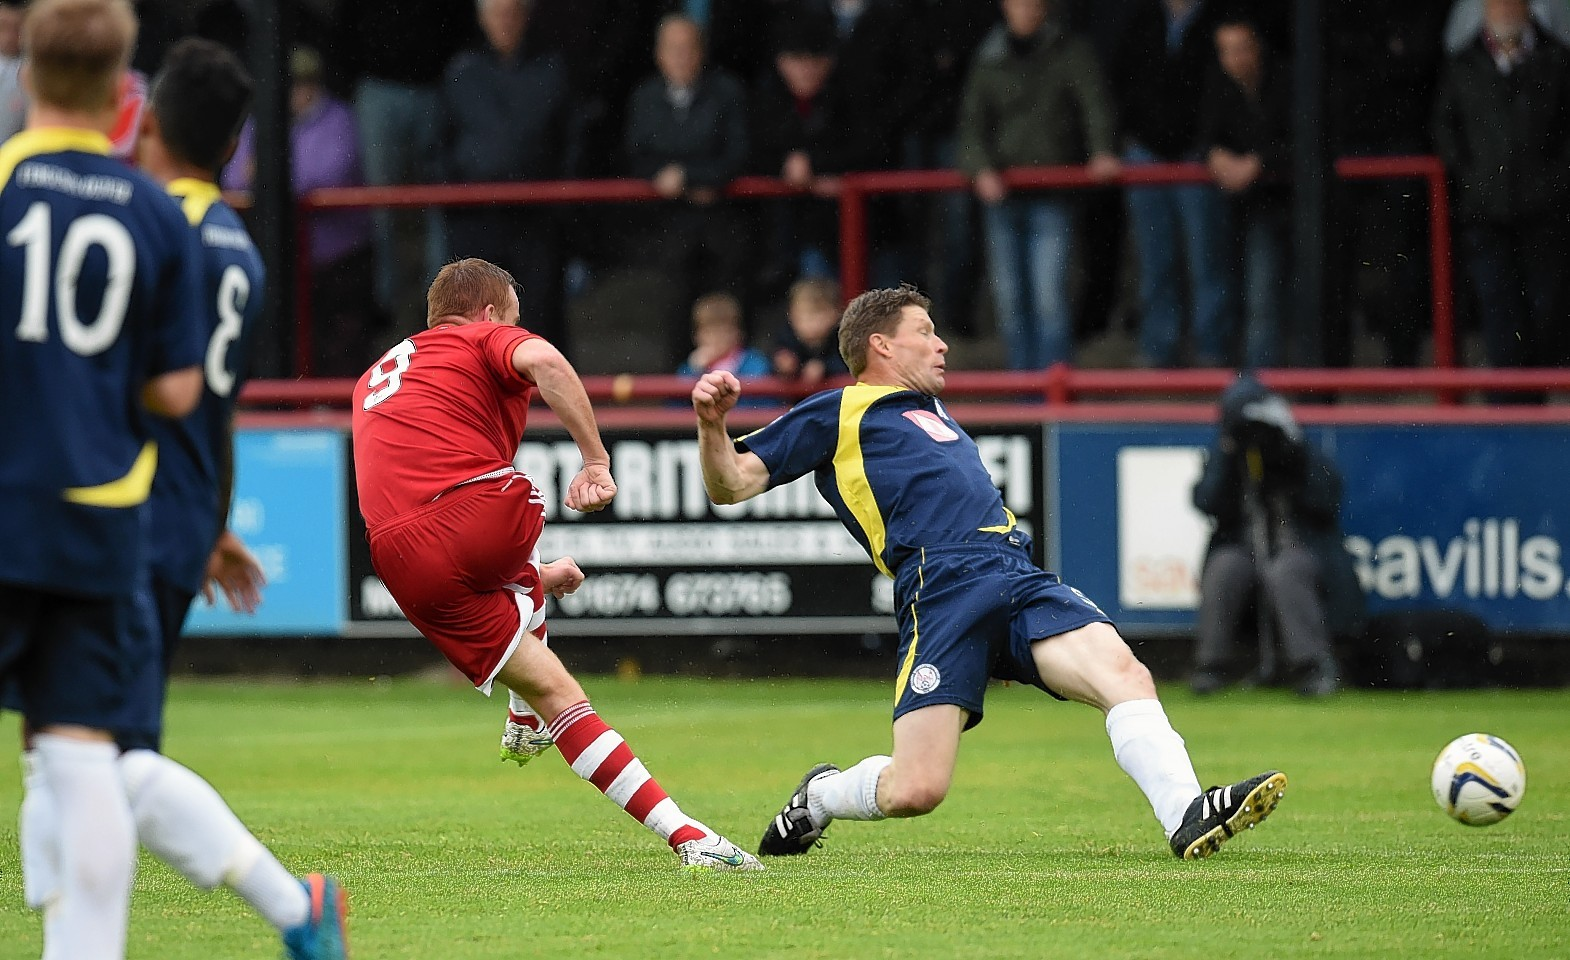 Adam Rooney fires home  the Dons' second goal